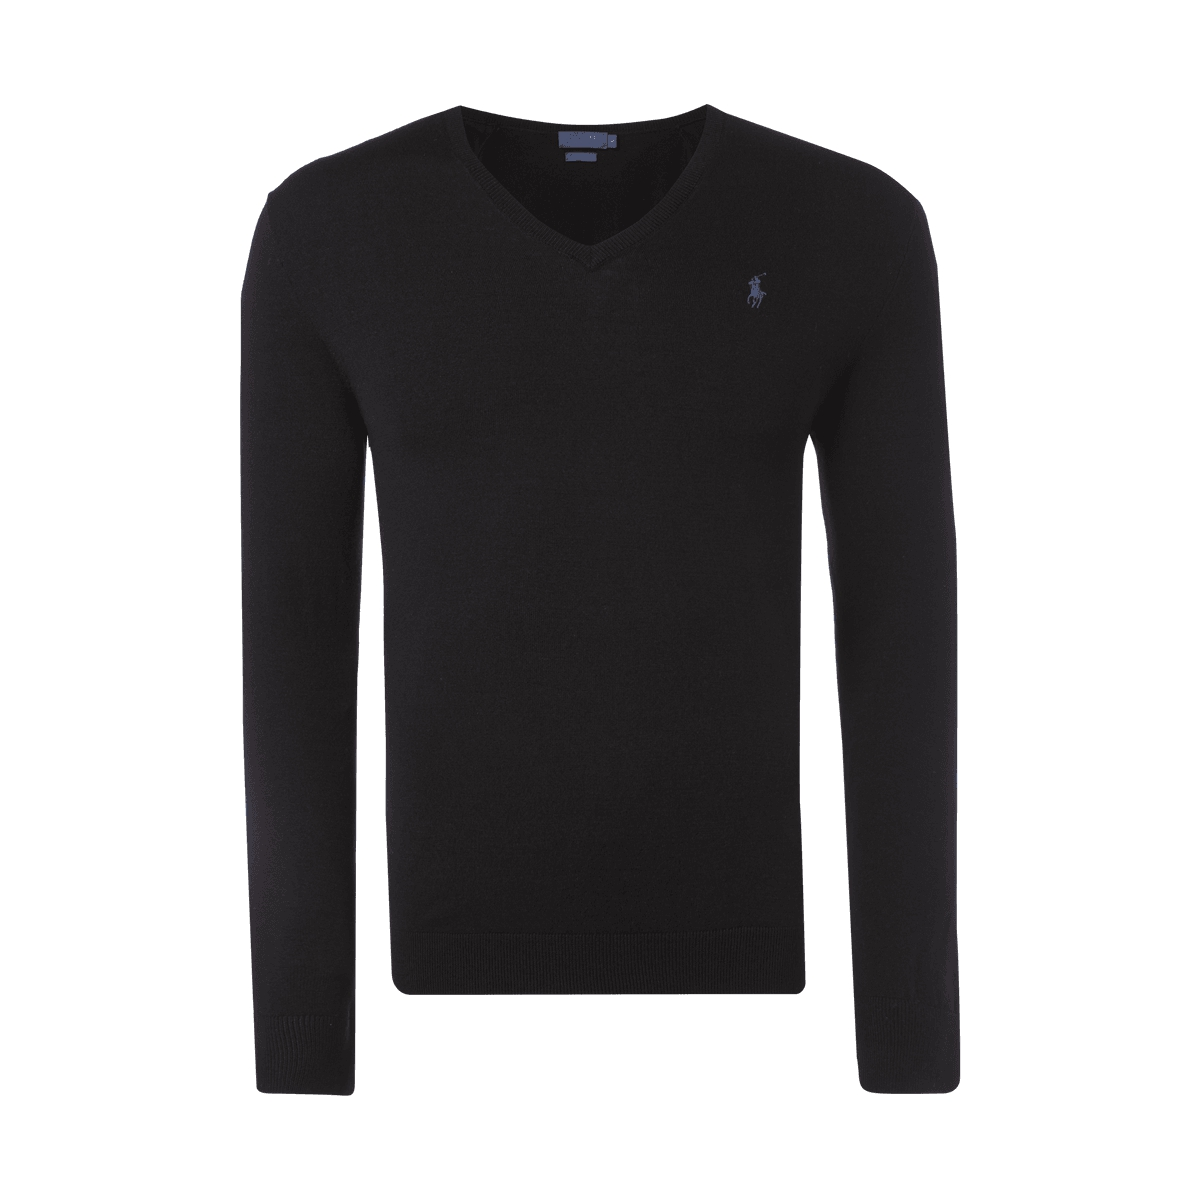 polo ralph lauren slim fit pullover mit abgerundetem v ausschnitt herren neu ebay. Black Bedroom Furniture Sets. Home Design Ideas